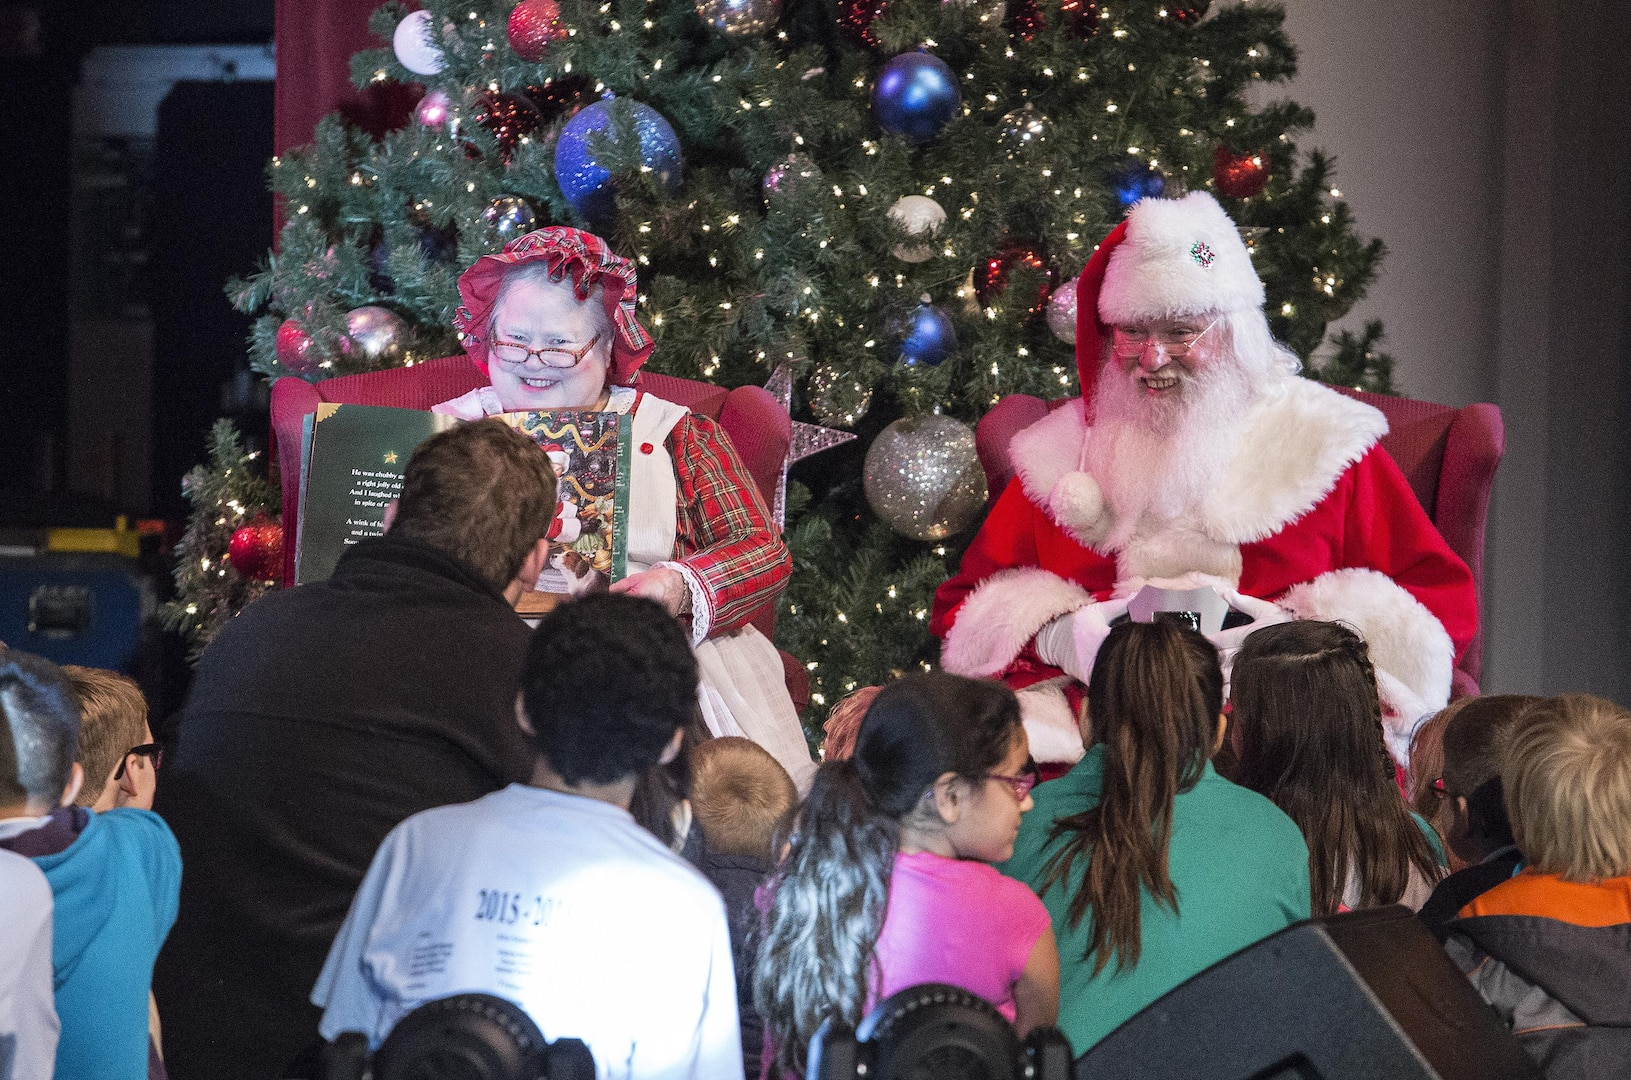 Santa and Mrs. Clause display a childrens book while United States Air Force Band of the West perform holiday music during the Holiday in Blue concert Dec. 7, 2015 at the Edgewood Independent School District Theatre for the Performing Arts in San Antonio, Texas. The concert included a variety of holiday songs from around the world, a children's story and a sing-a-long. Attendees included members of JBSA, community members and retirees. The Airmen assigned to the band are highly-trained professional musicians who have dedicated themselves to serving their country through music. (U.S. Air Force photo by Johnny Saldivar)